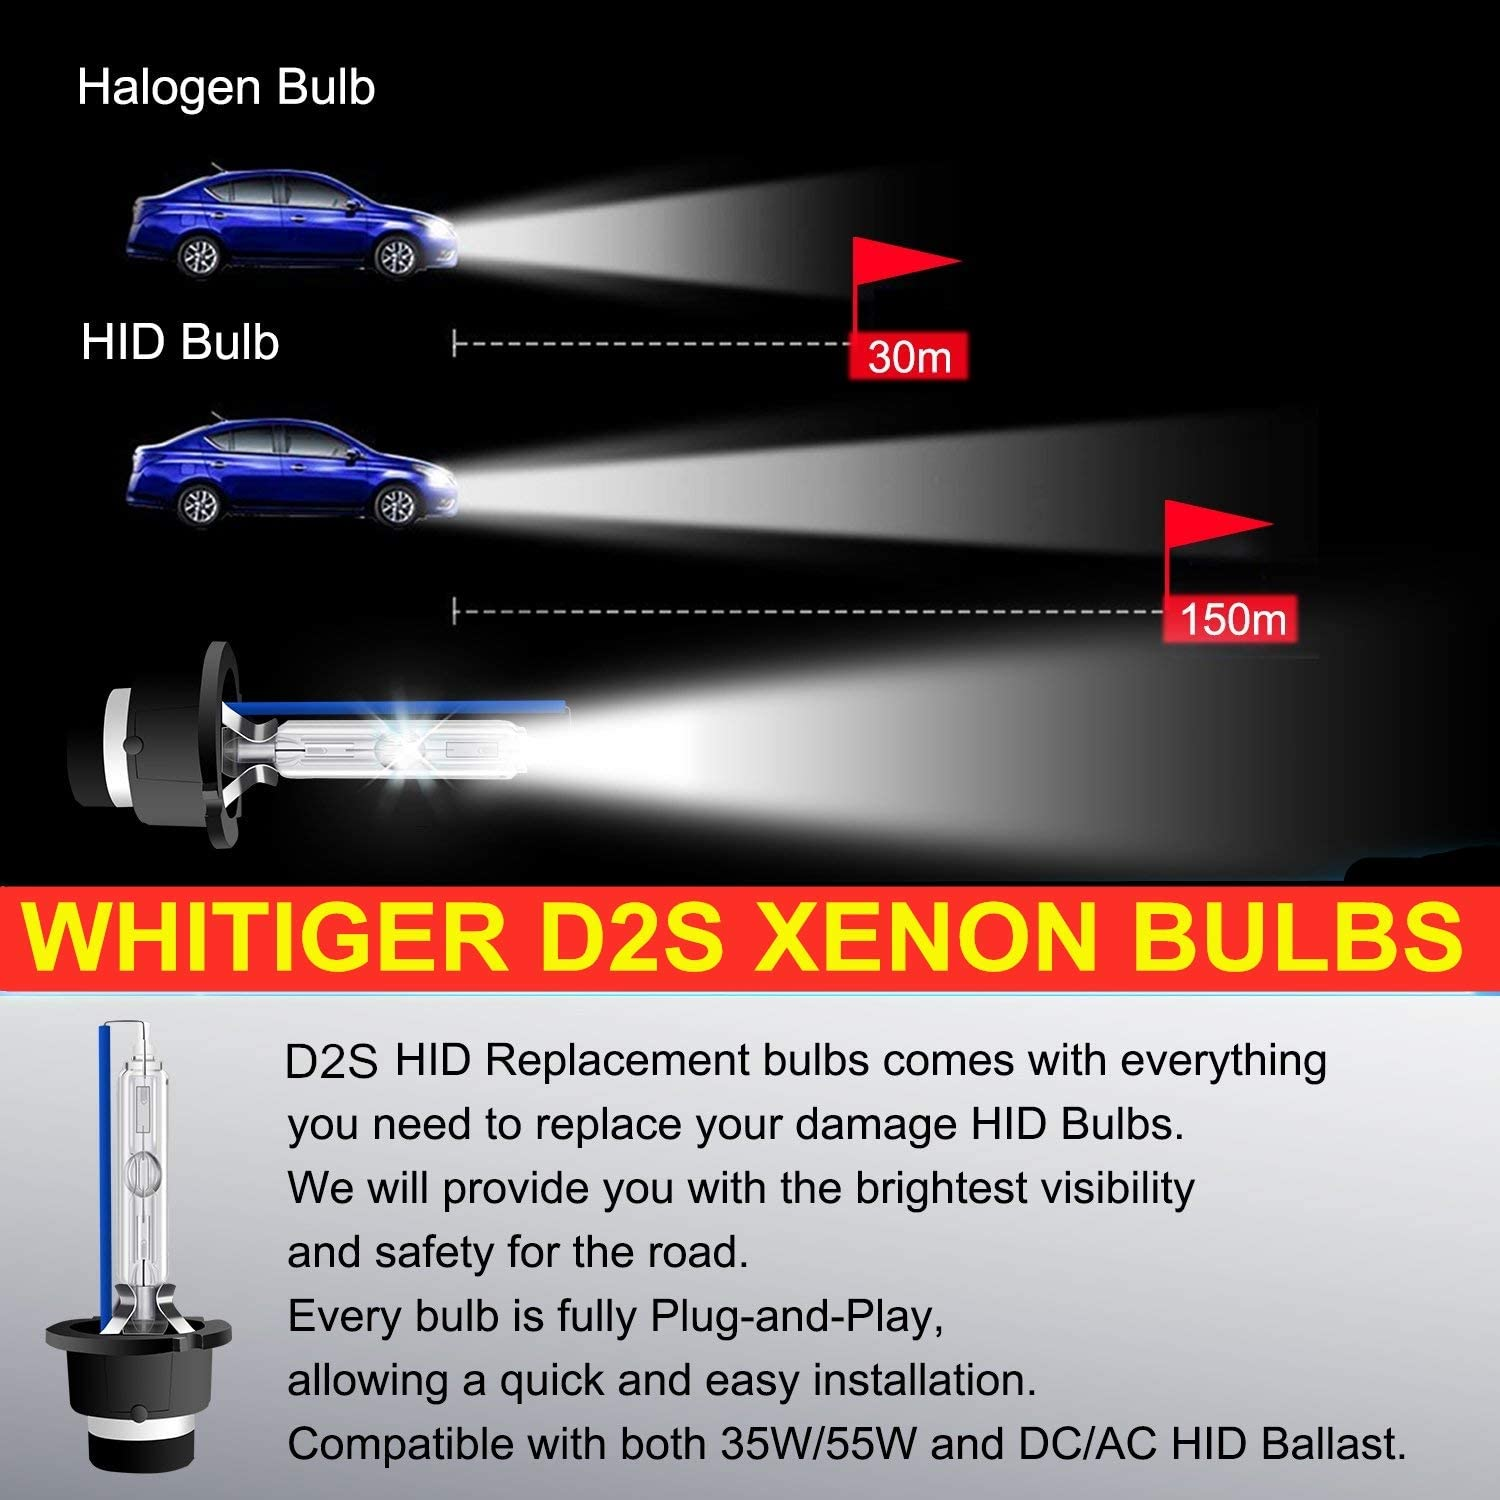 35W 4300K 12V Factory Color OEM Replace for Halogen or LED Exterior Headlamp Bulbs Pack of 2 Whitiger Car HID D2S Xenon Headlight Bulbs